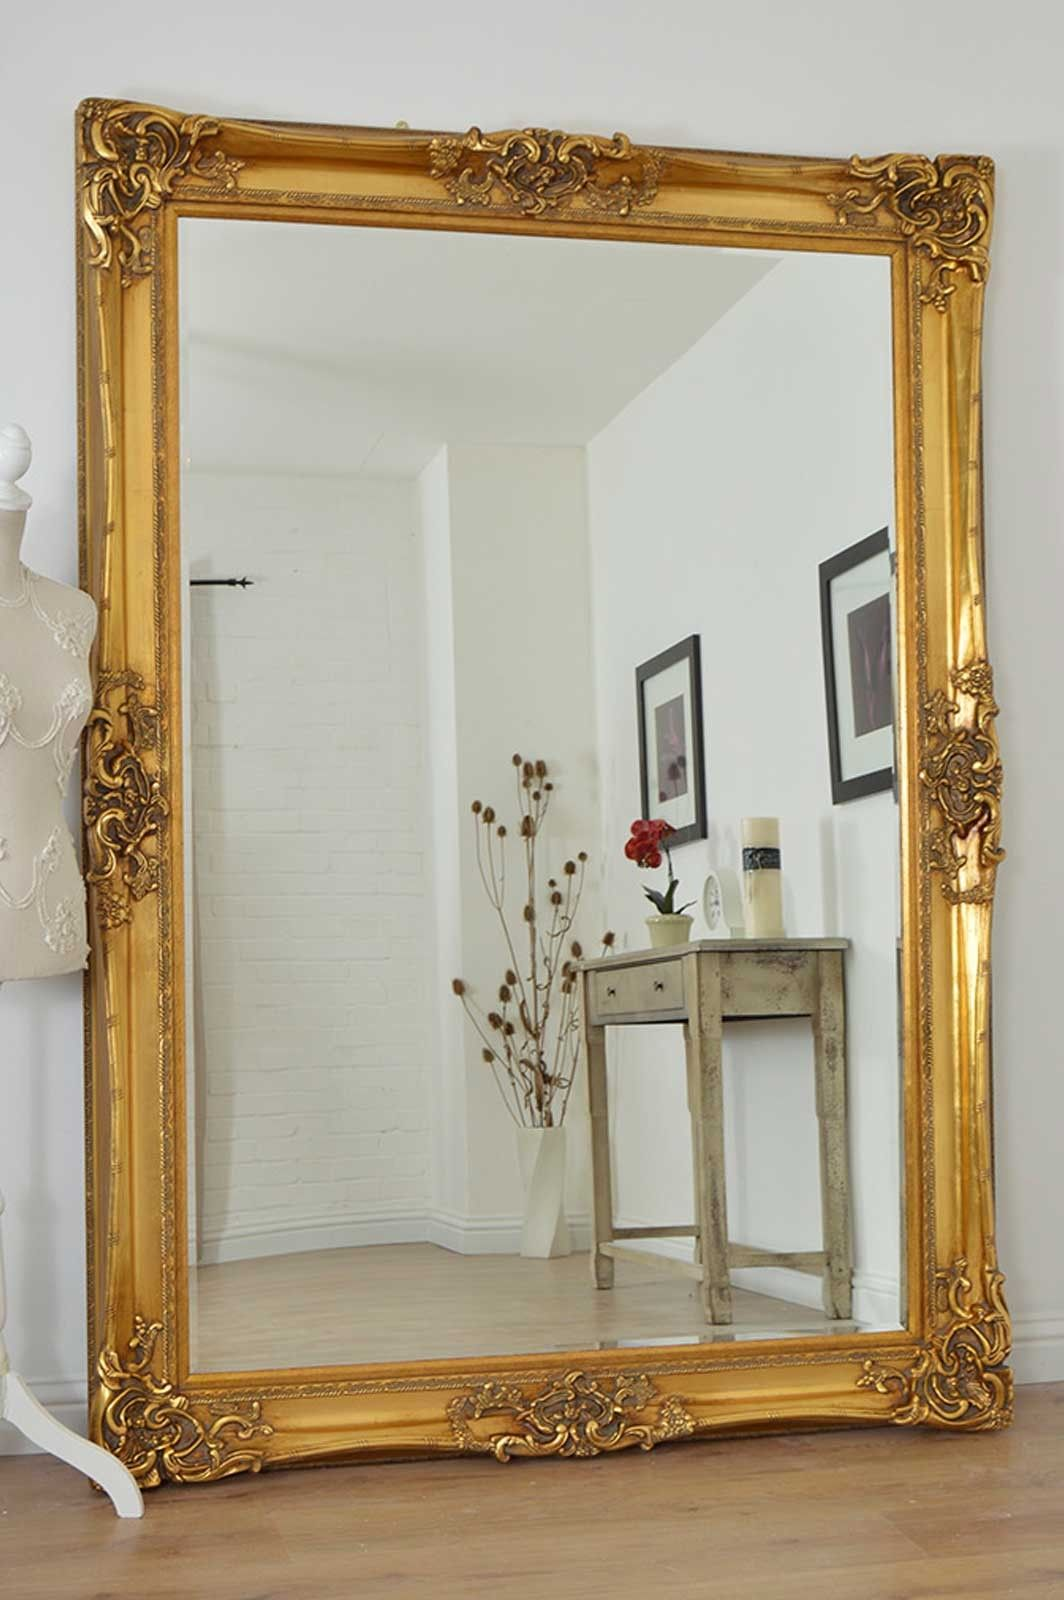 Large Gold Very Ornate Antique Design Wall Mirror 7ft X 5ft 213cm X 152cm Large Wall Mirror Gold Mirror Wall Oversized Wall Mirrors